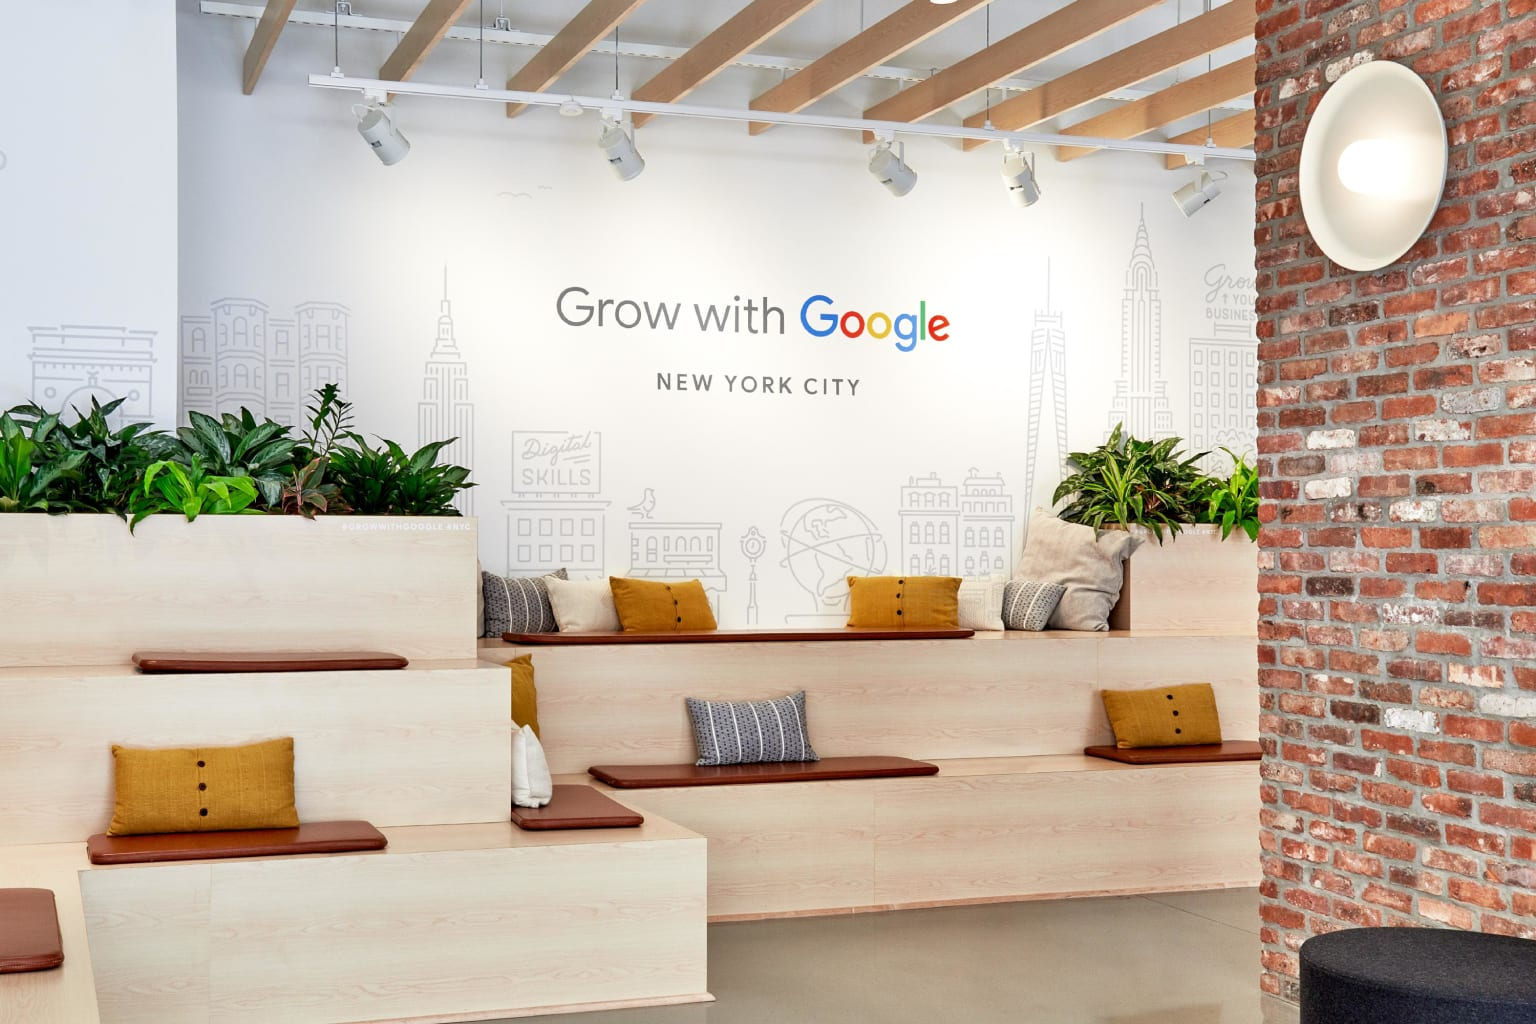 Grow with Google NYC Learning Center